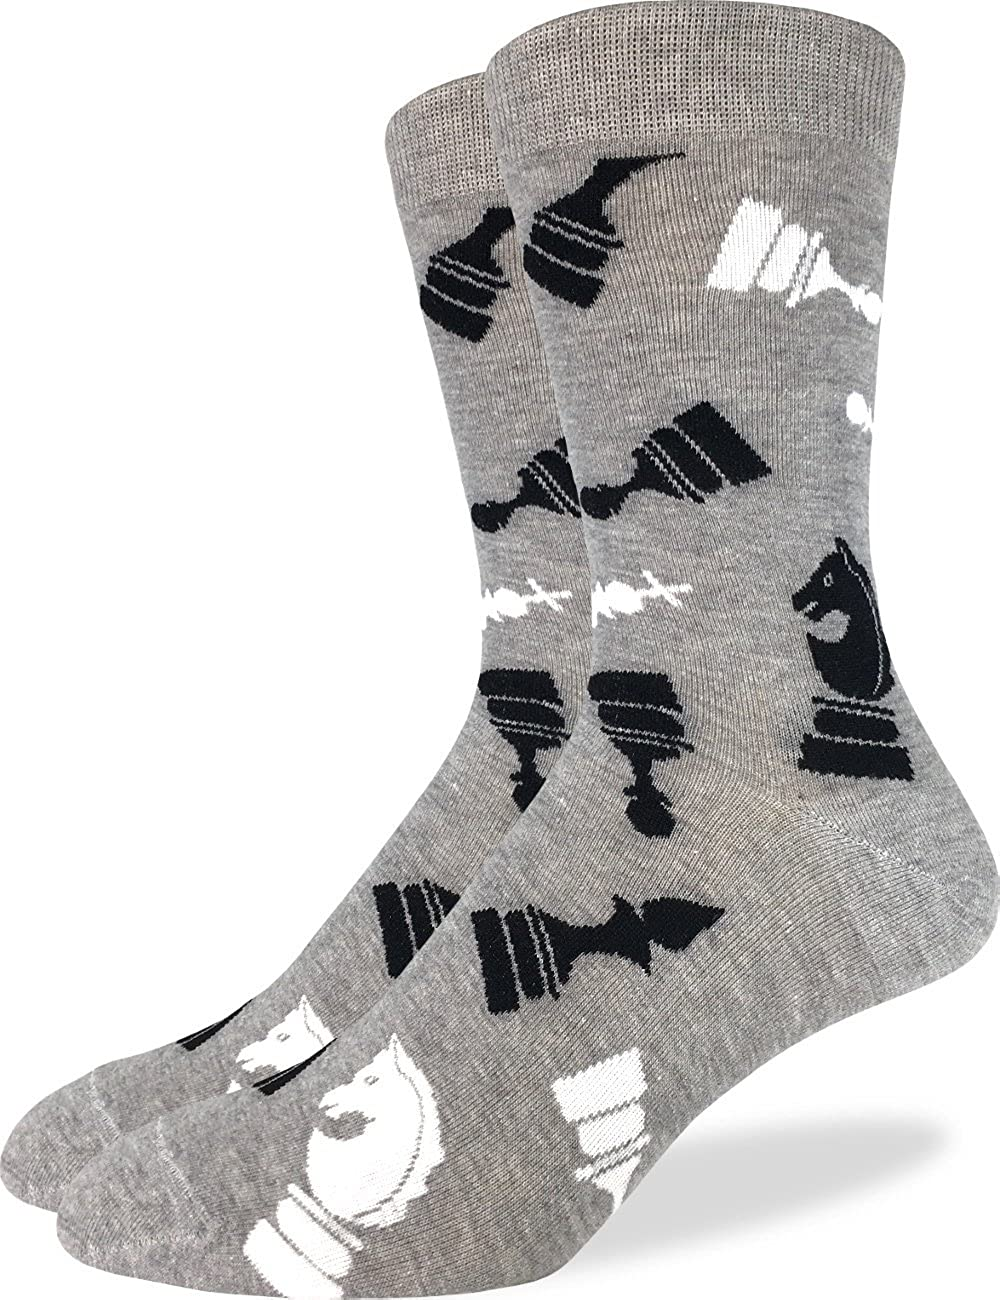 Good Luck Sock Men's Extra Large Chess Socks - Shoe Size 13-17, Big & Tall 2037